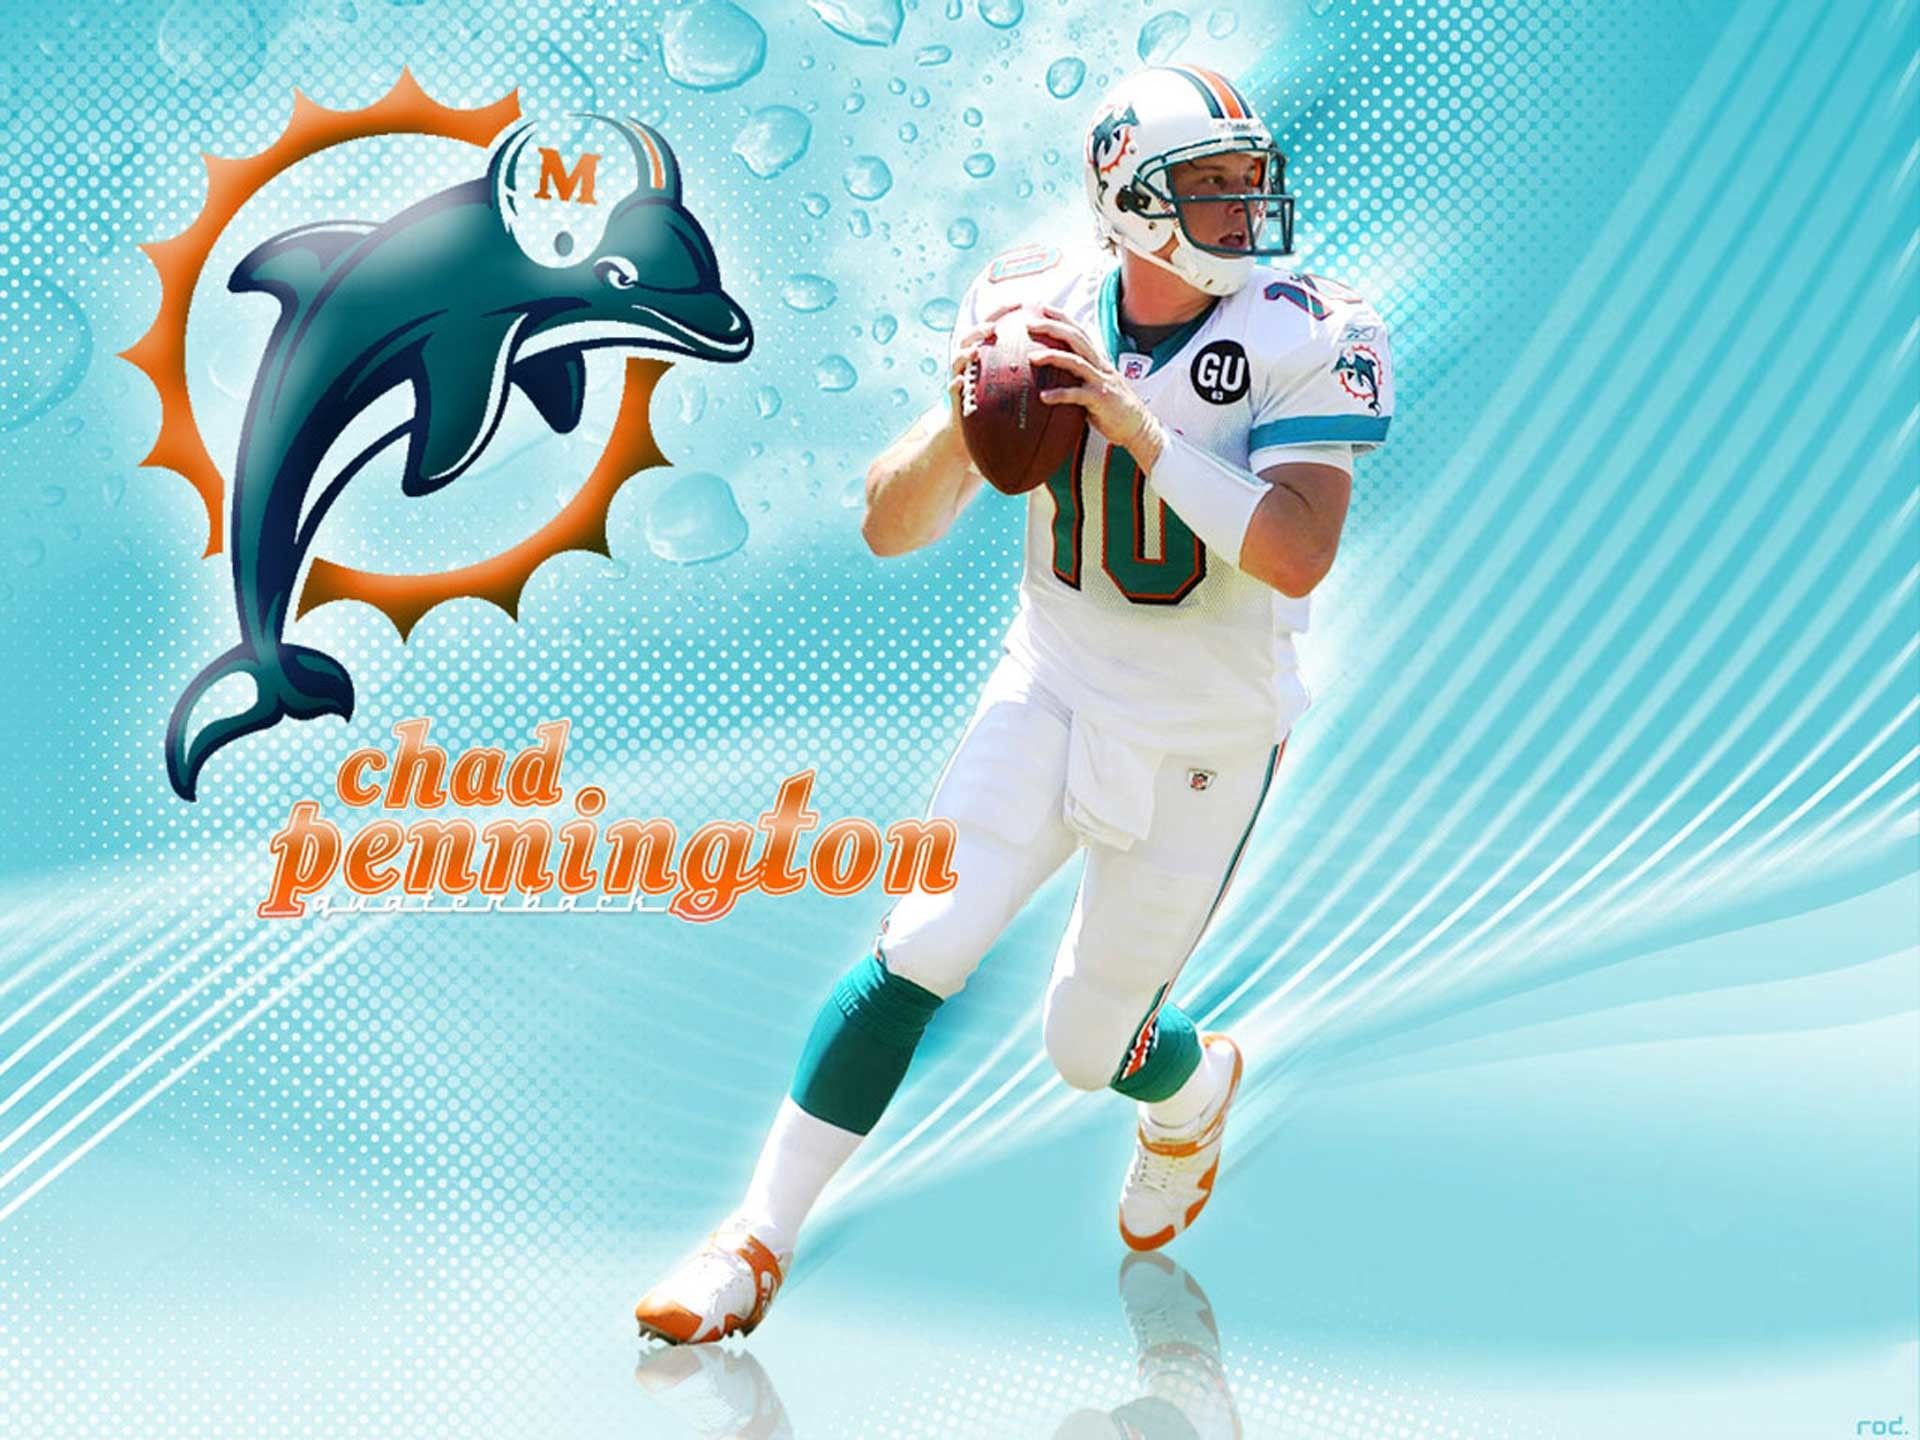 Wallpaper Of The Day: Miami Dolphins